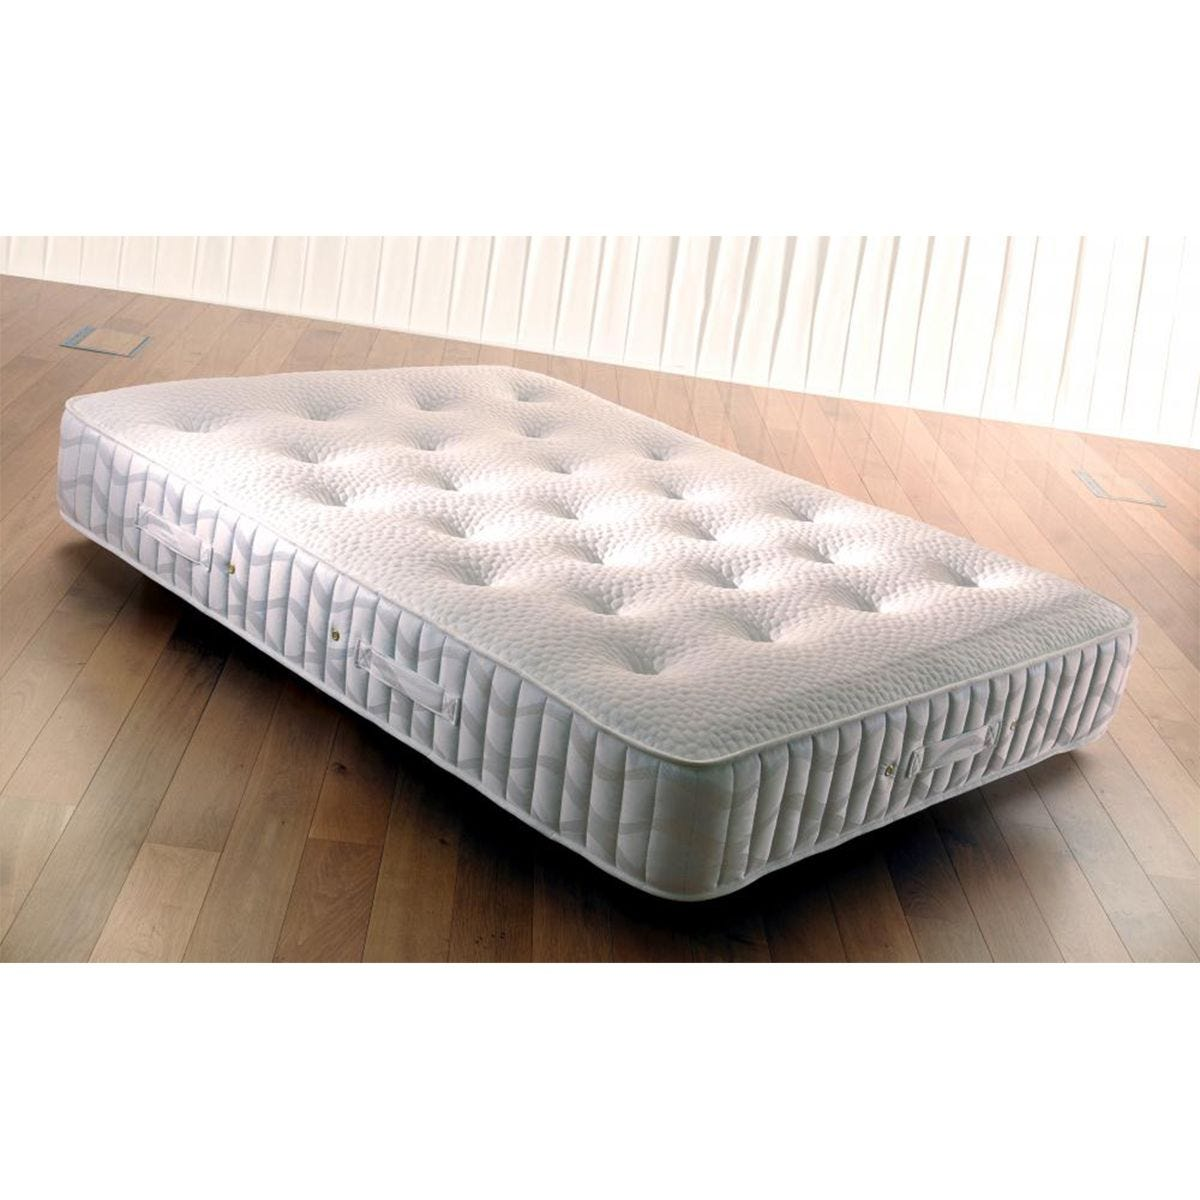 Alora Orthopaedic Pocket 3000 Sprung Medium-Firm Single Mattress